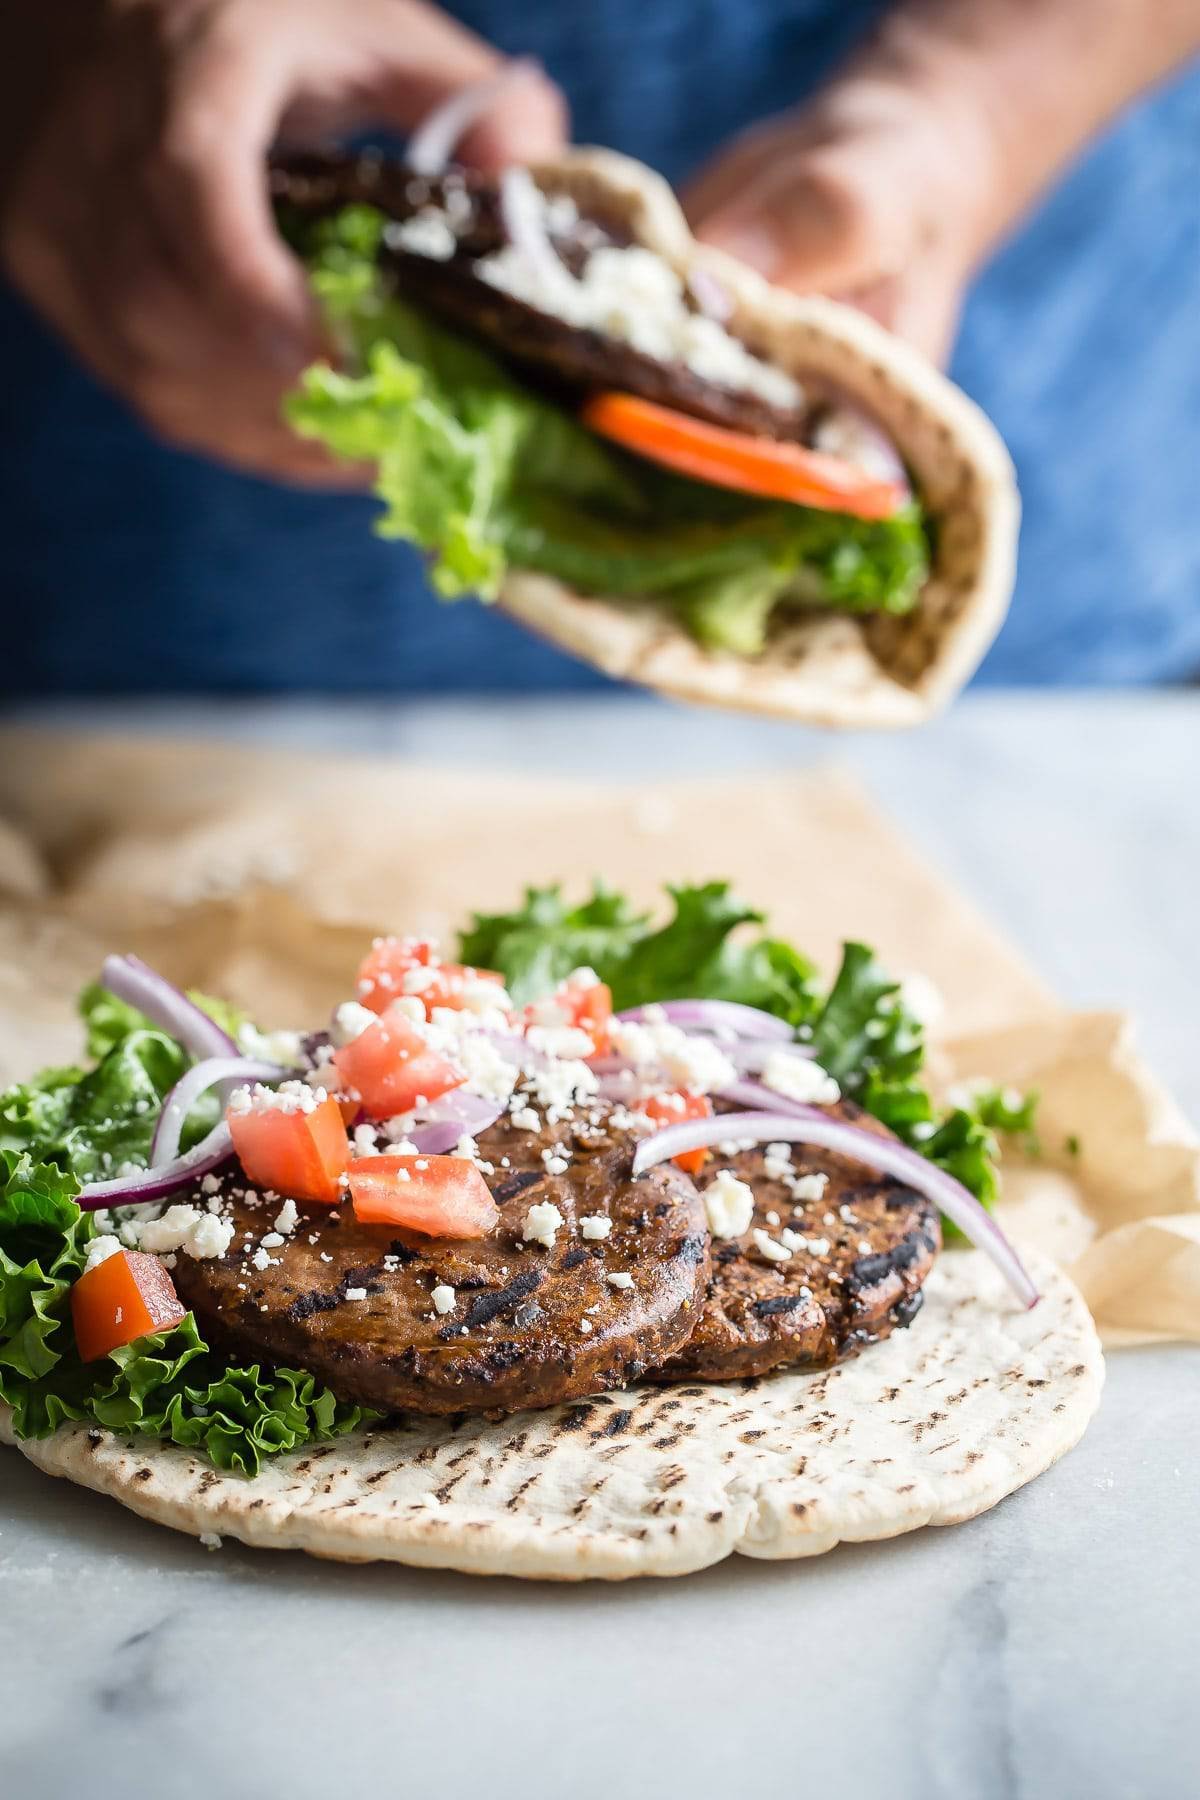 Pita Sandwich with Grilled Black Bean Patties